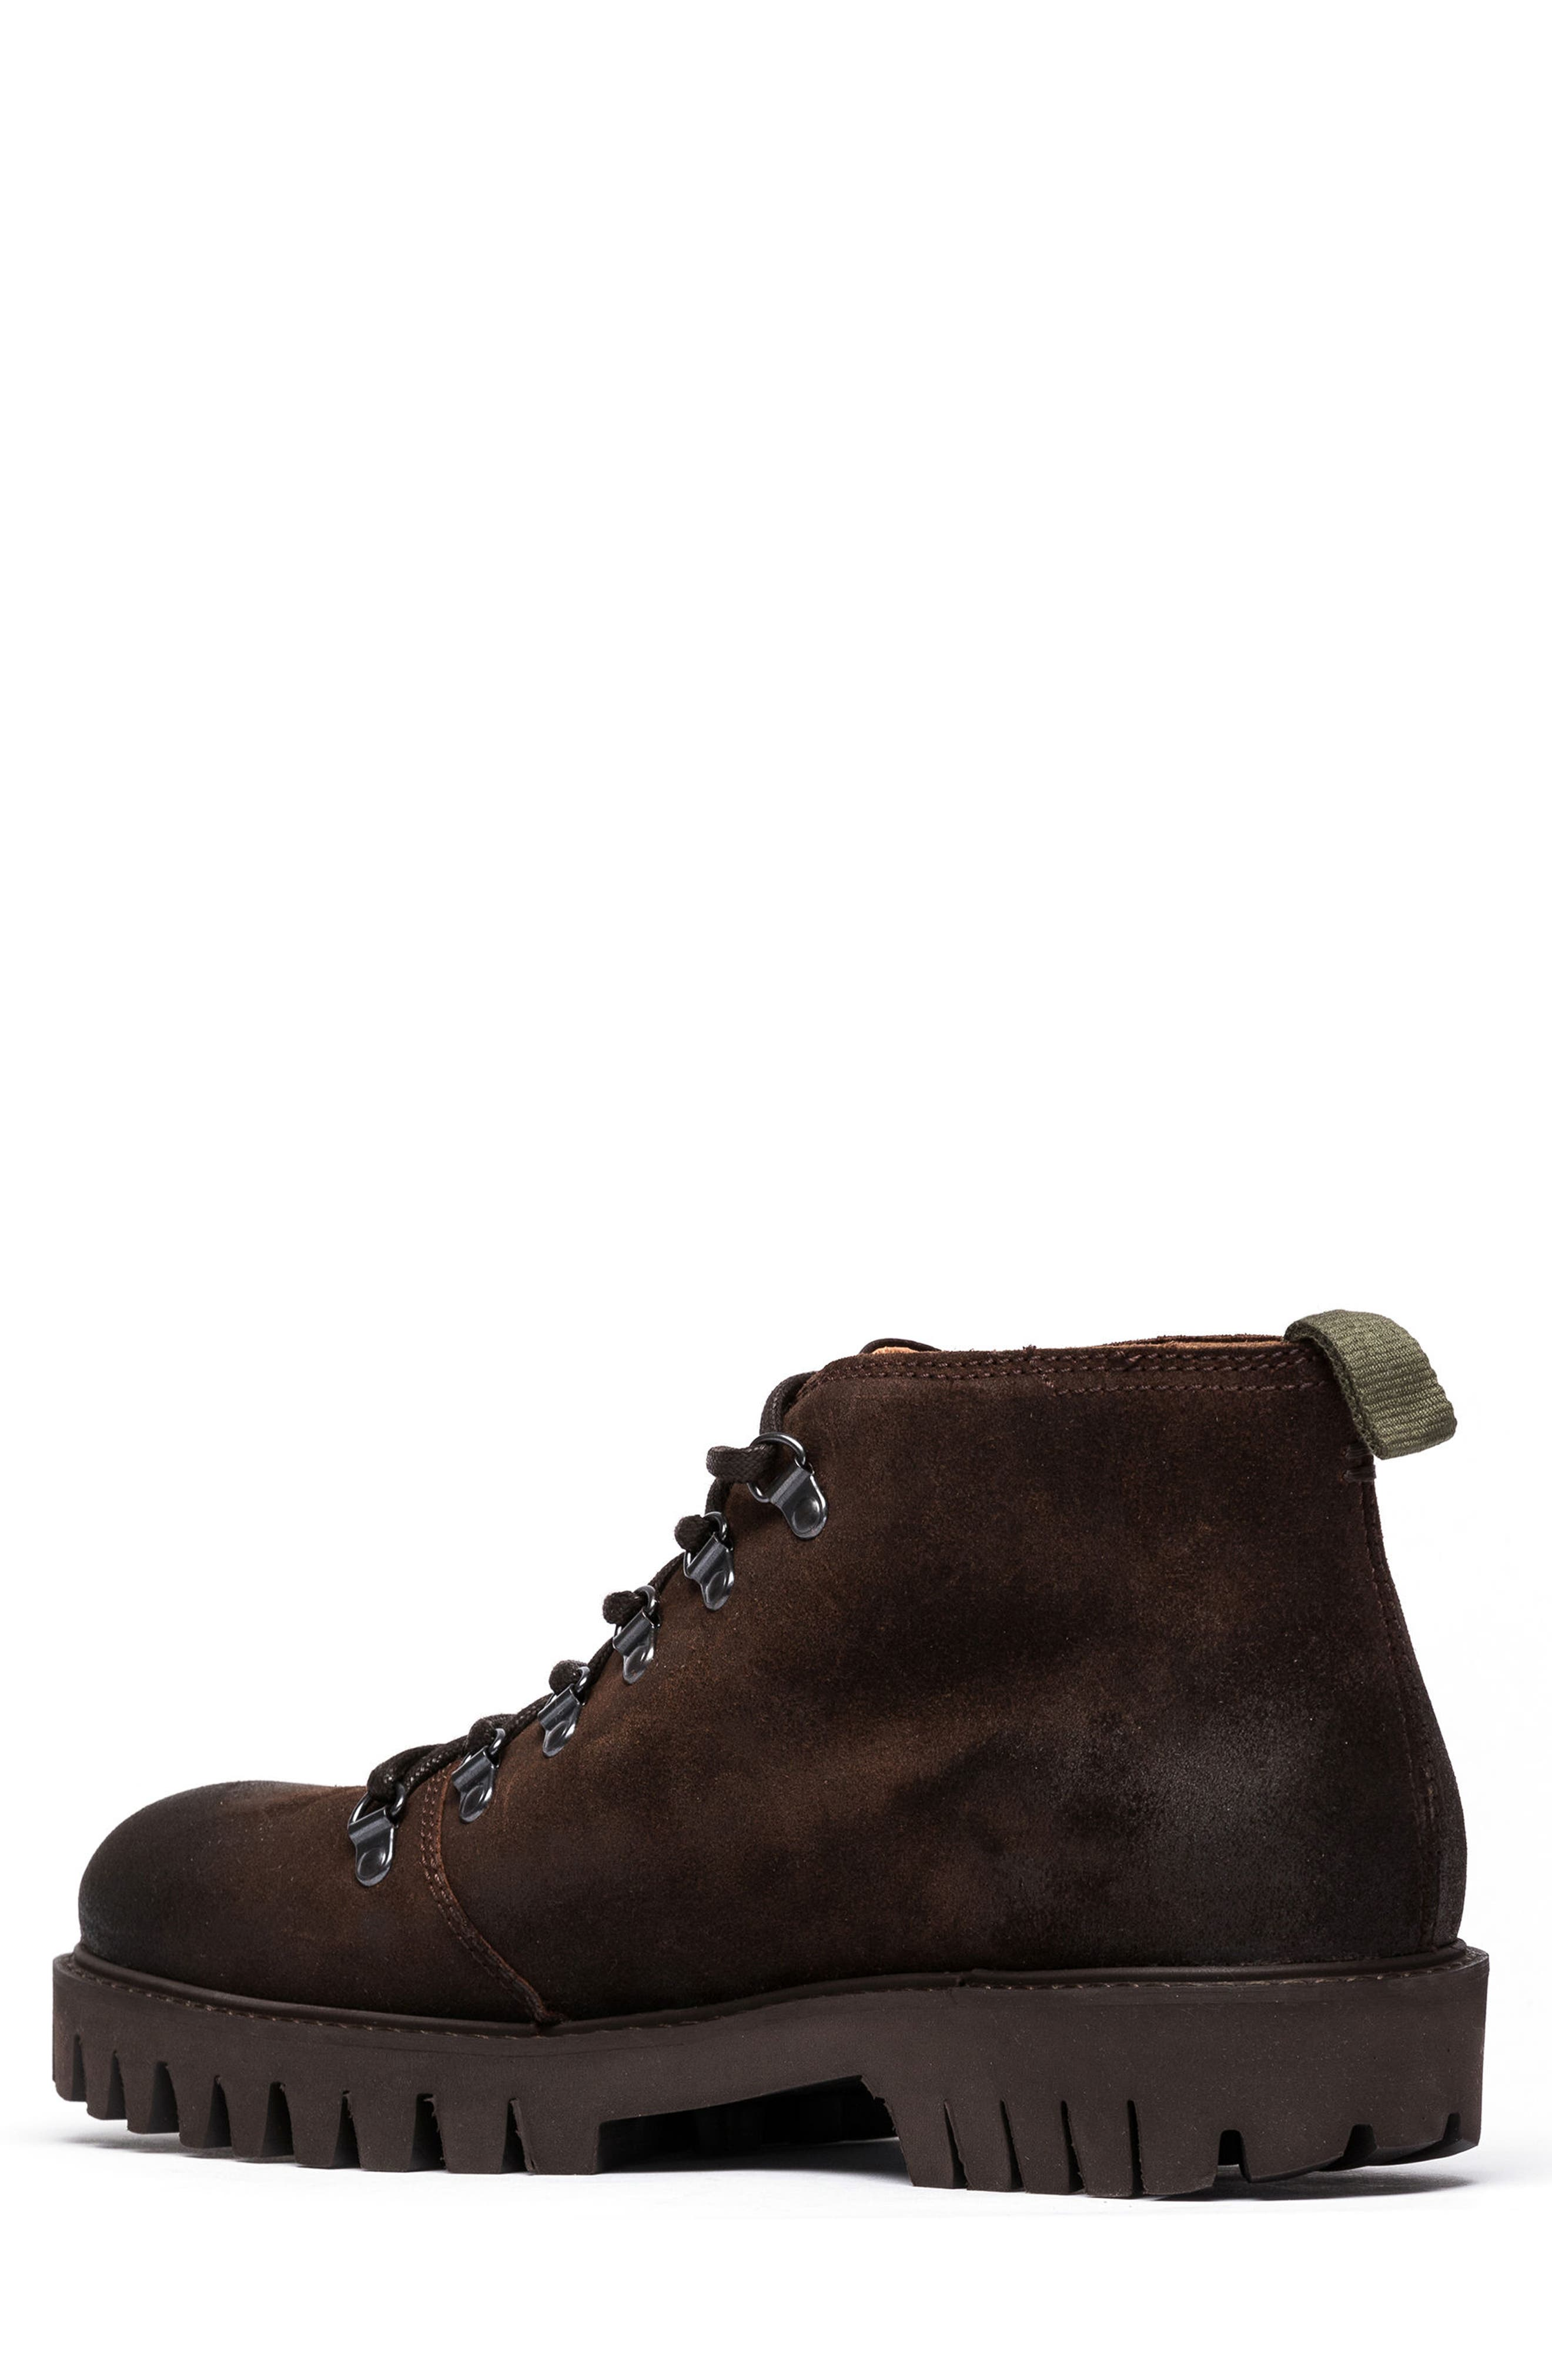 Rees River Lugged Boot,                             Alternate thumbnail 2, color,                             201